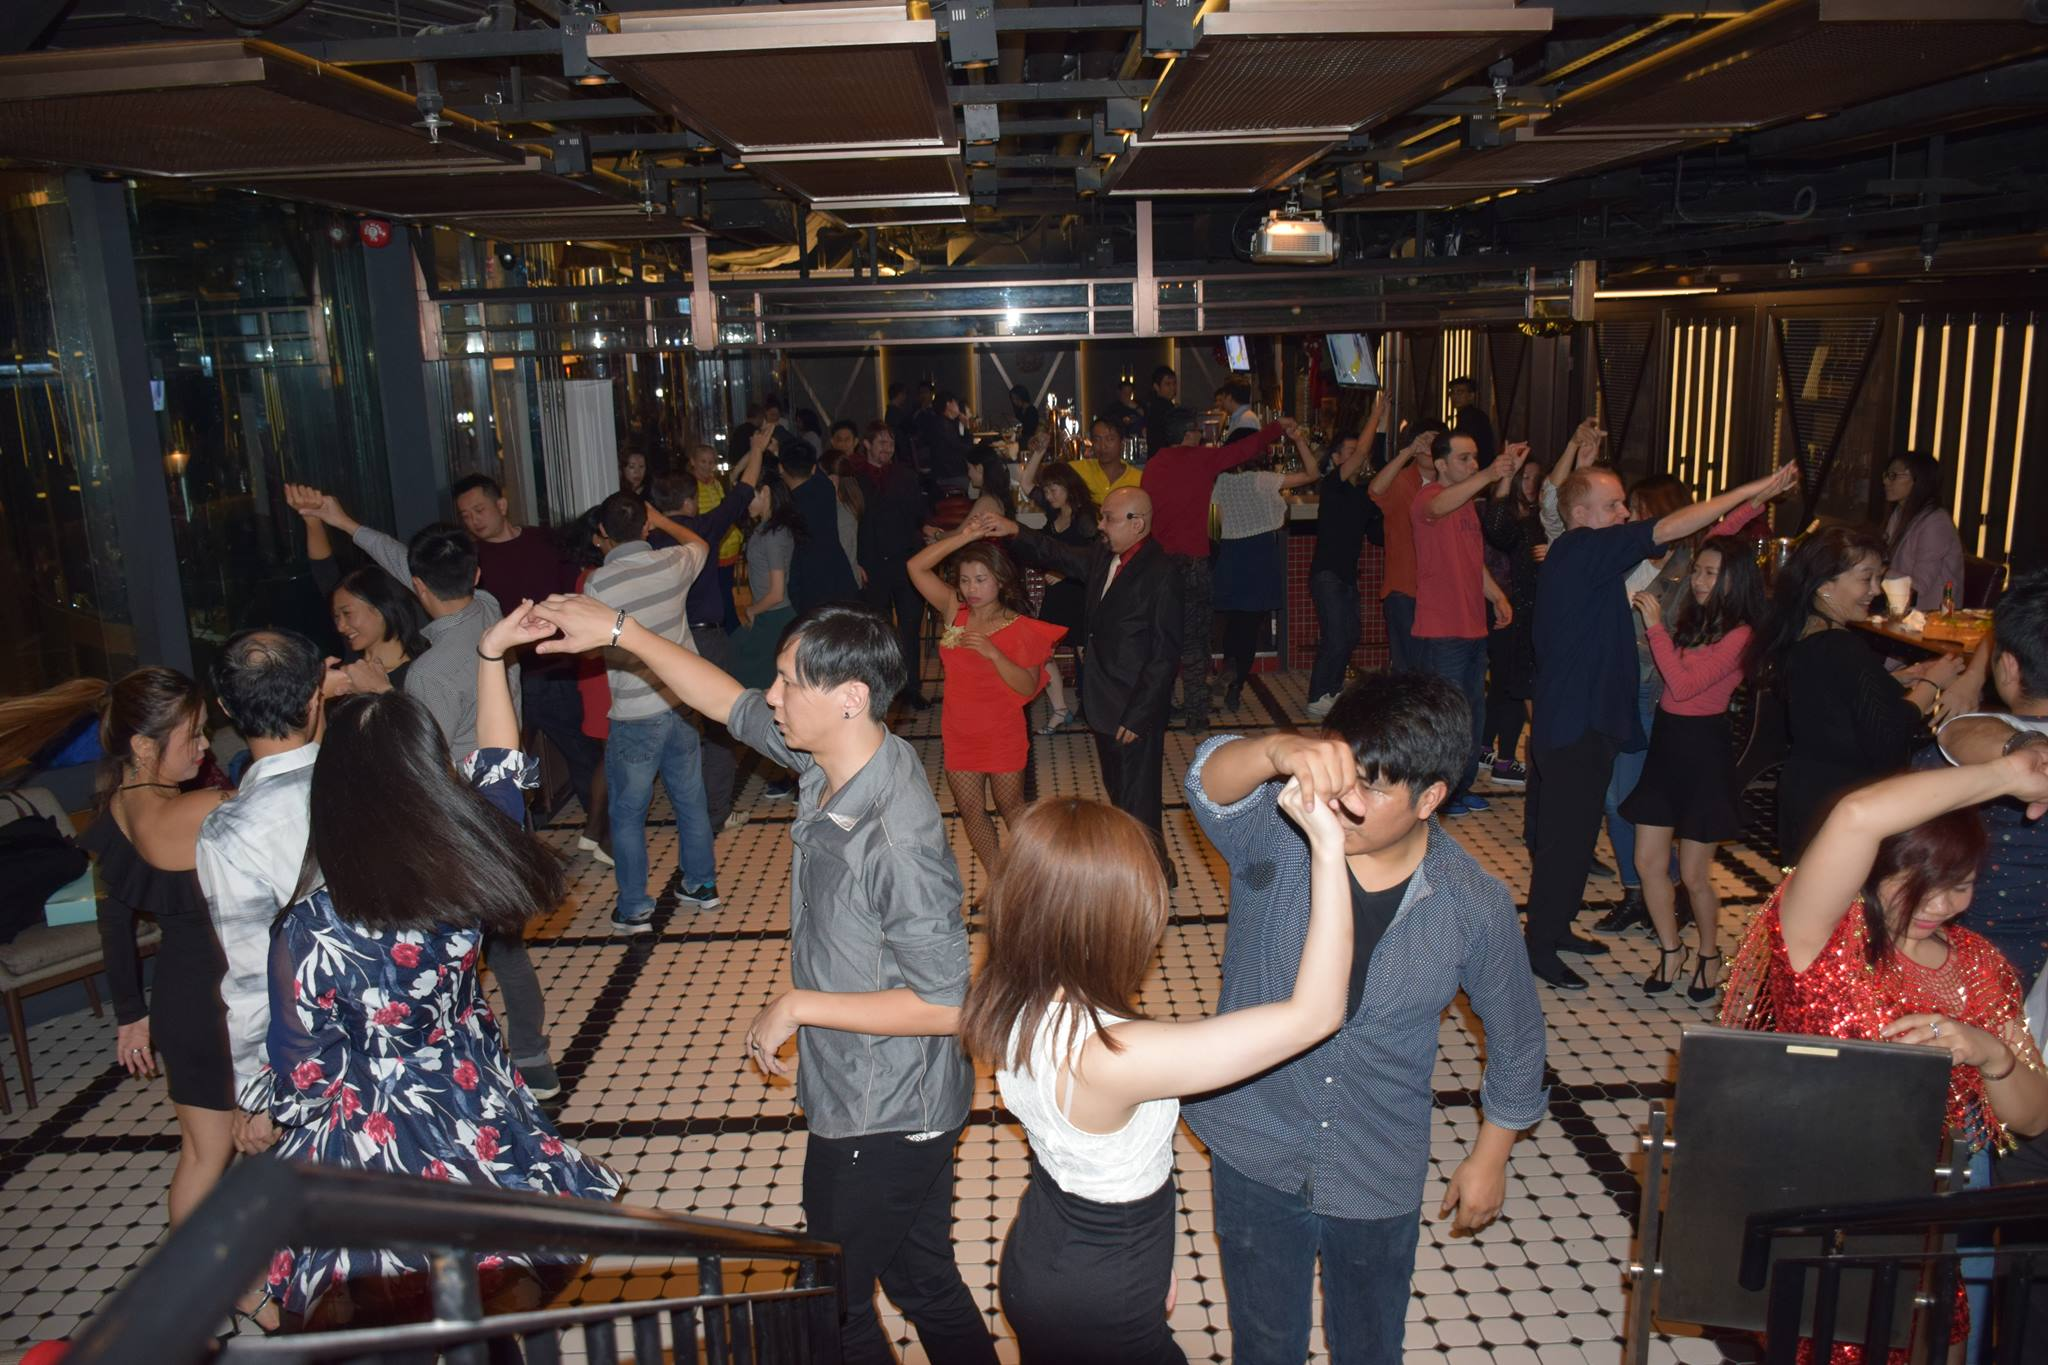 GET YOUR PARTY GOING WITH EVENT DANCE LESSON